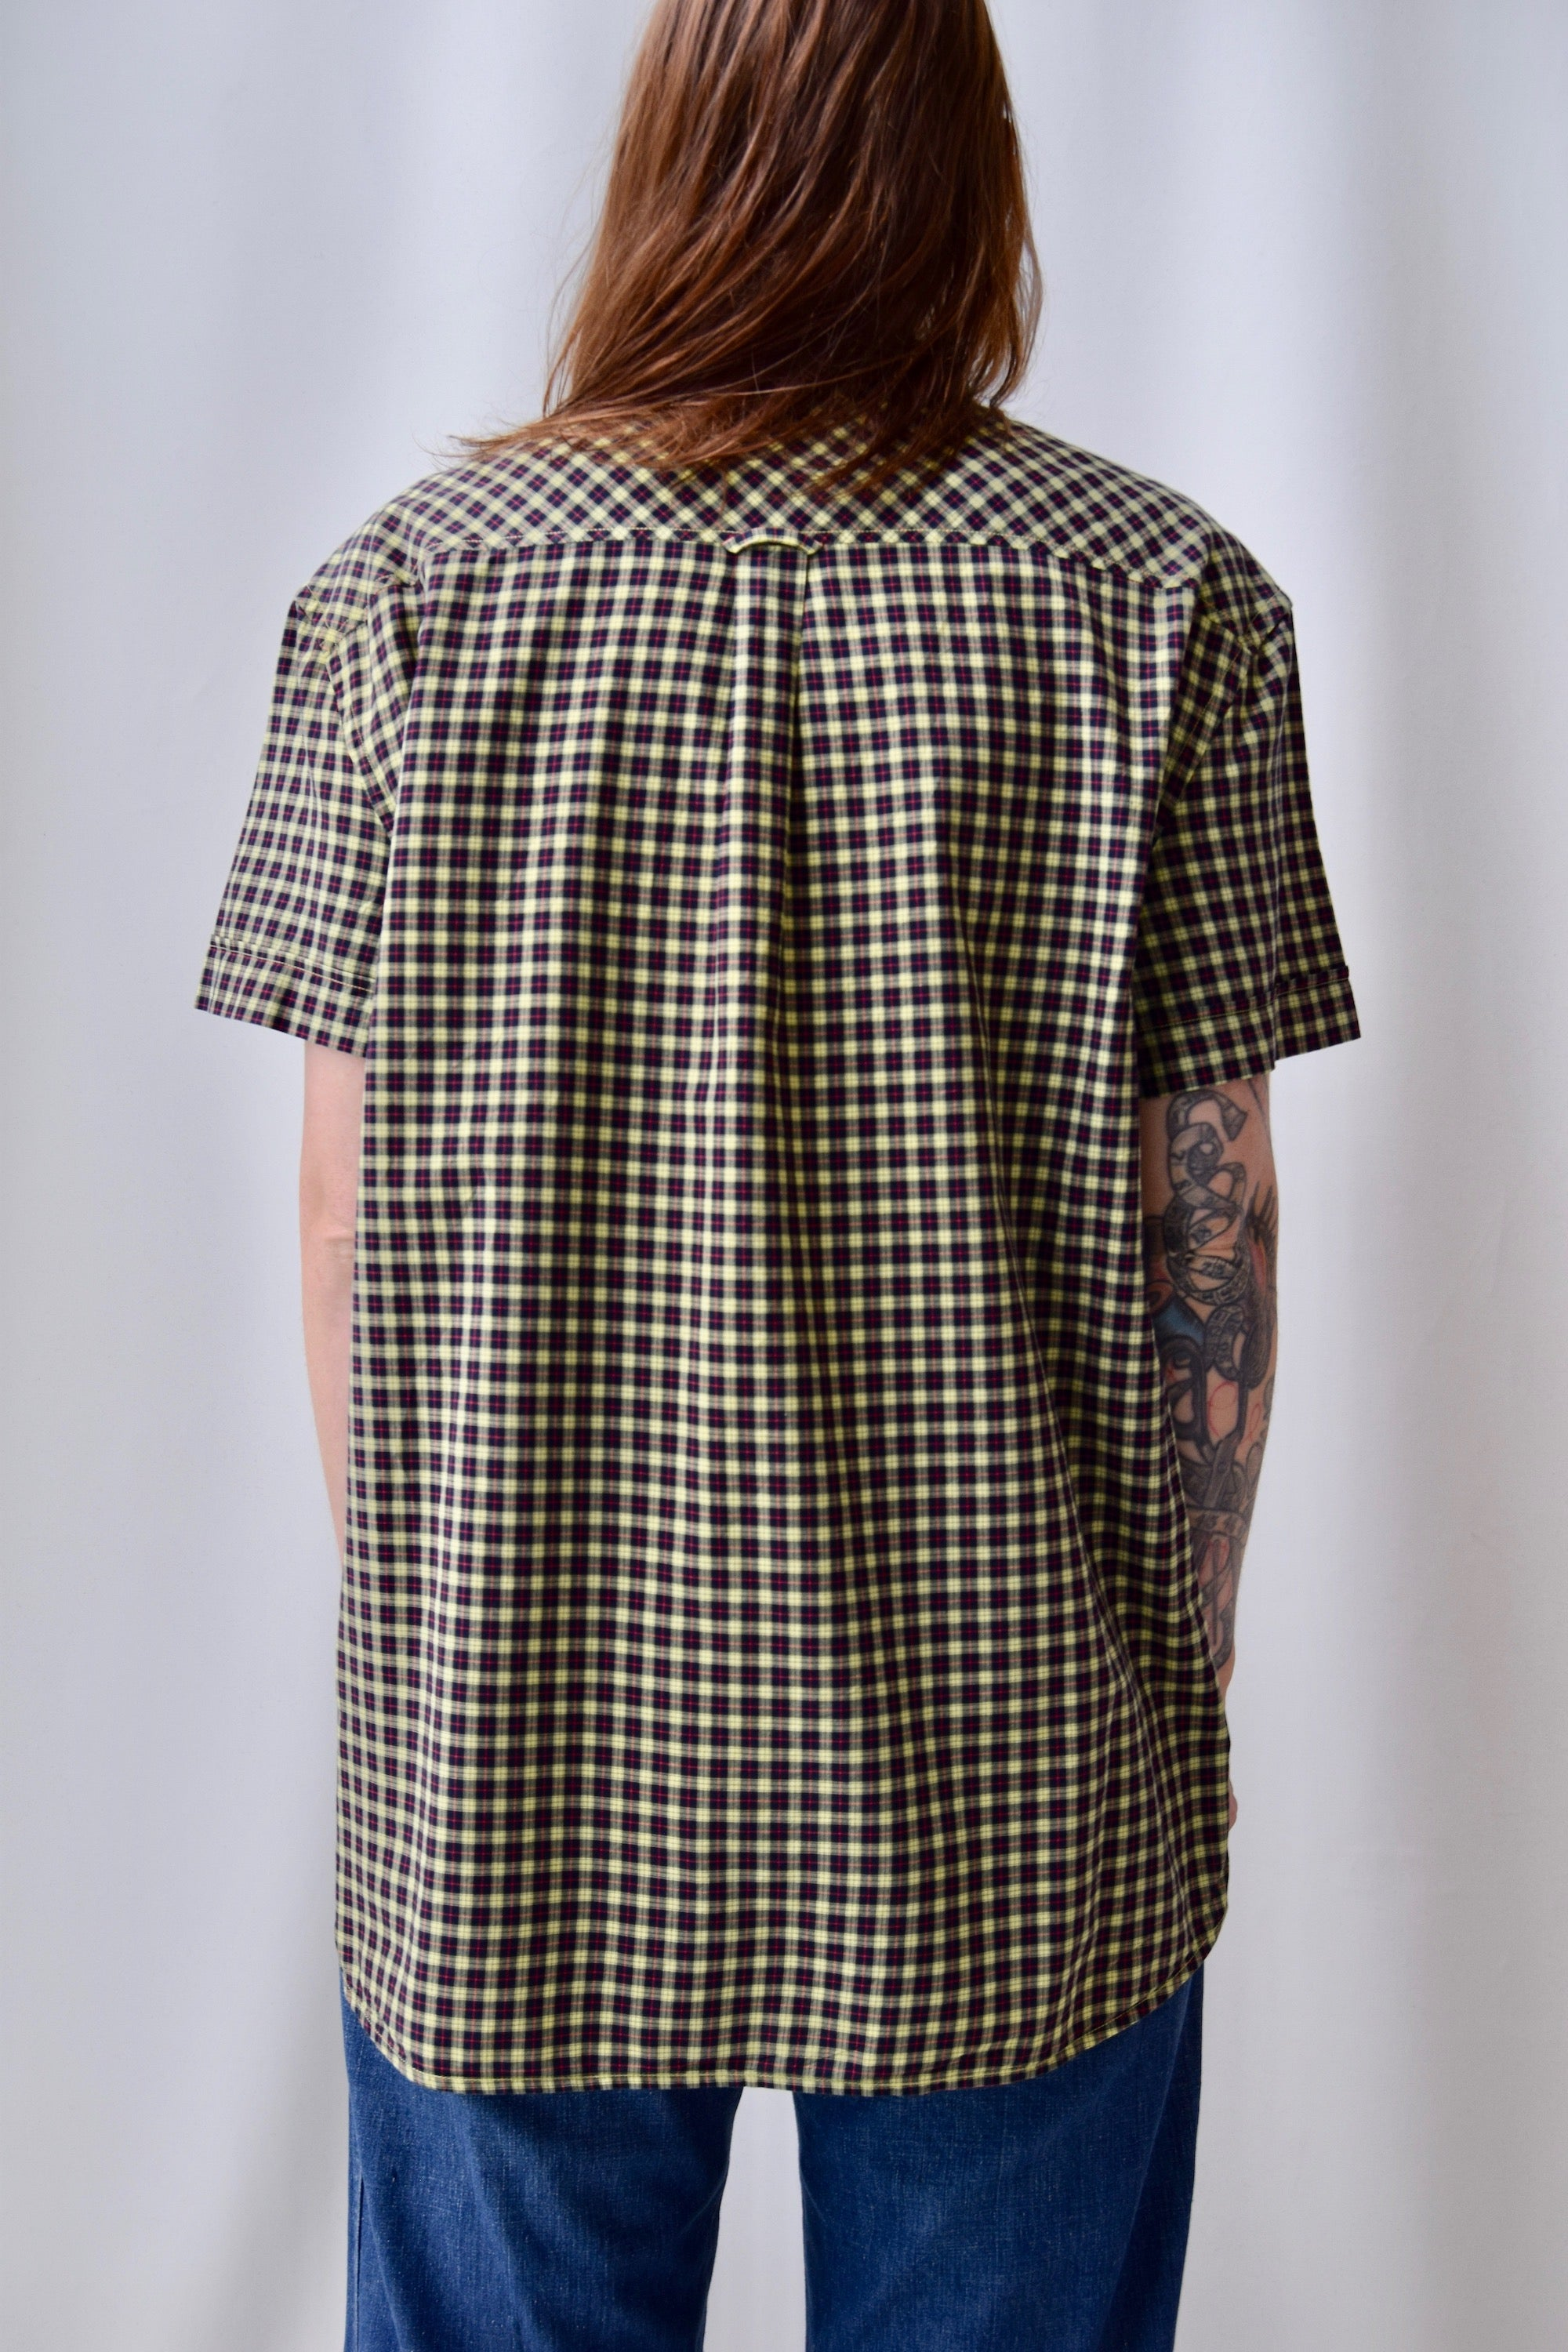 Balmain Plaid Short Sleeve Button Up